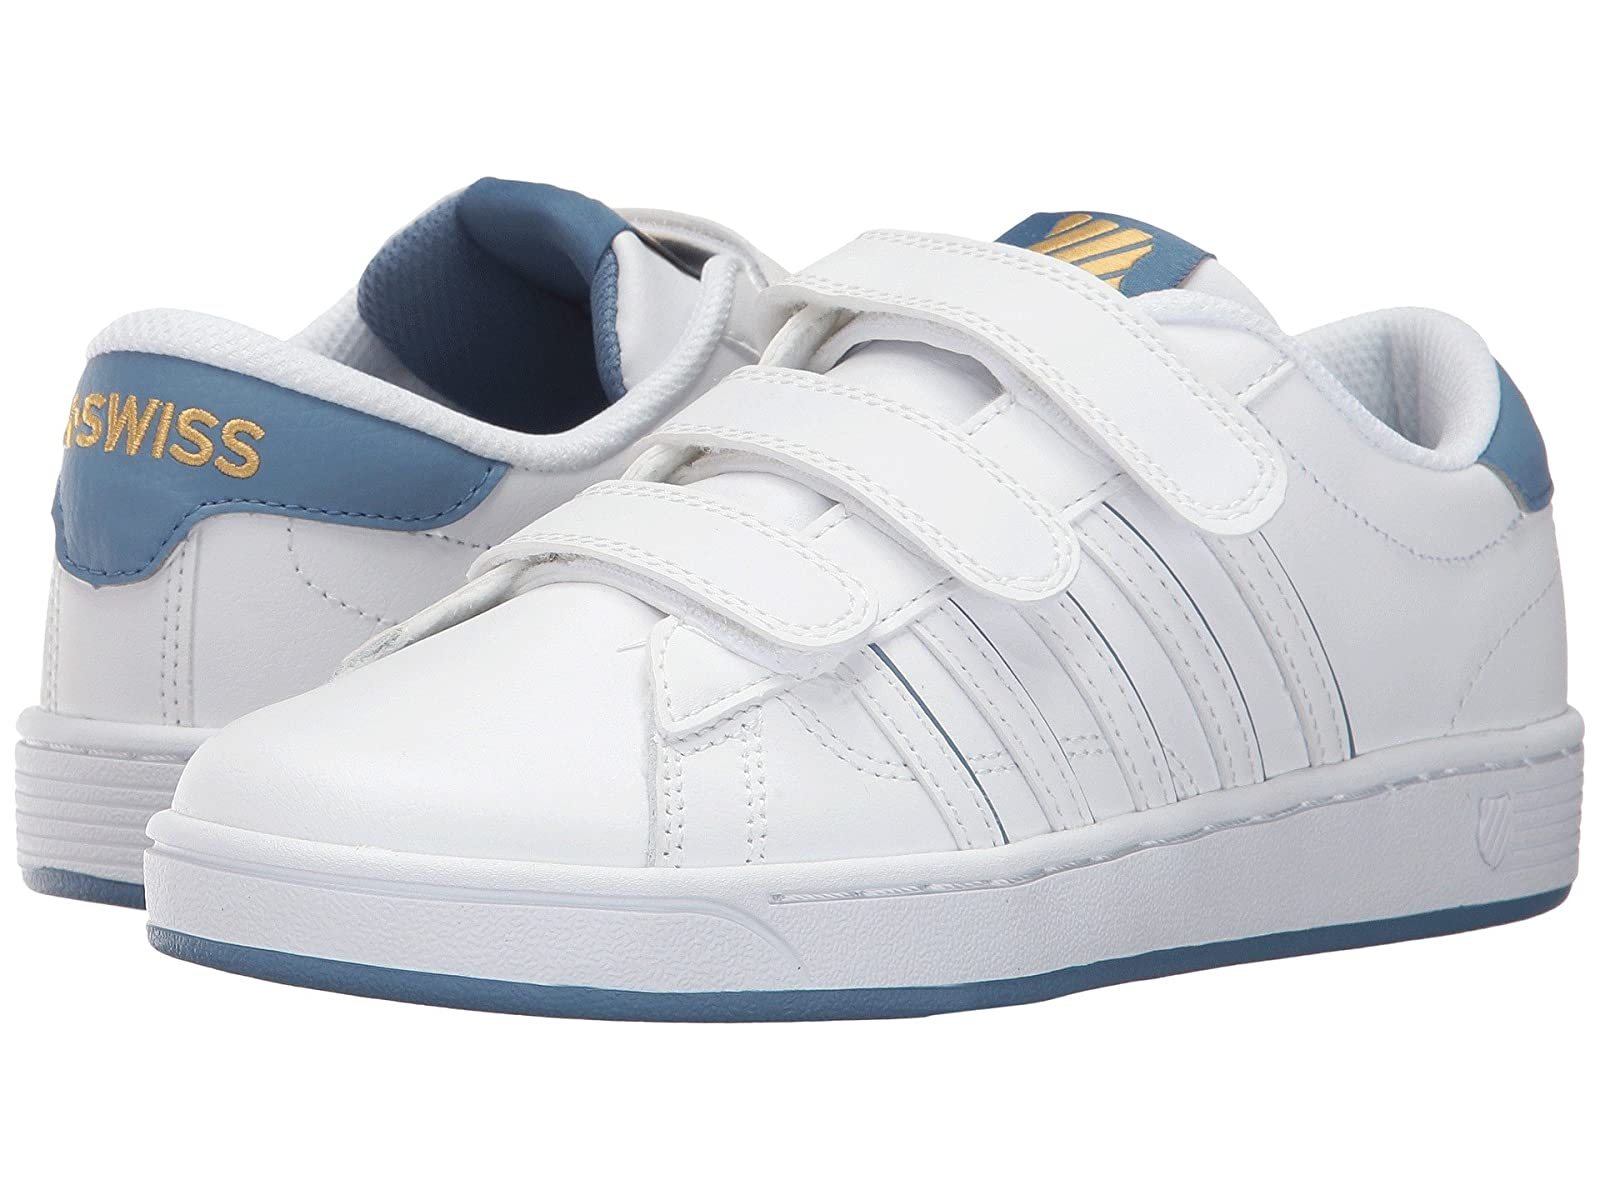 K-Swiss Hoke 3-Strap SP CMFCheap and distinctive eye-catching shoes